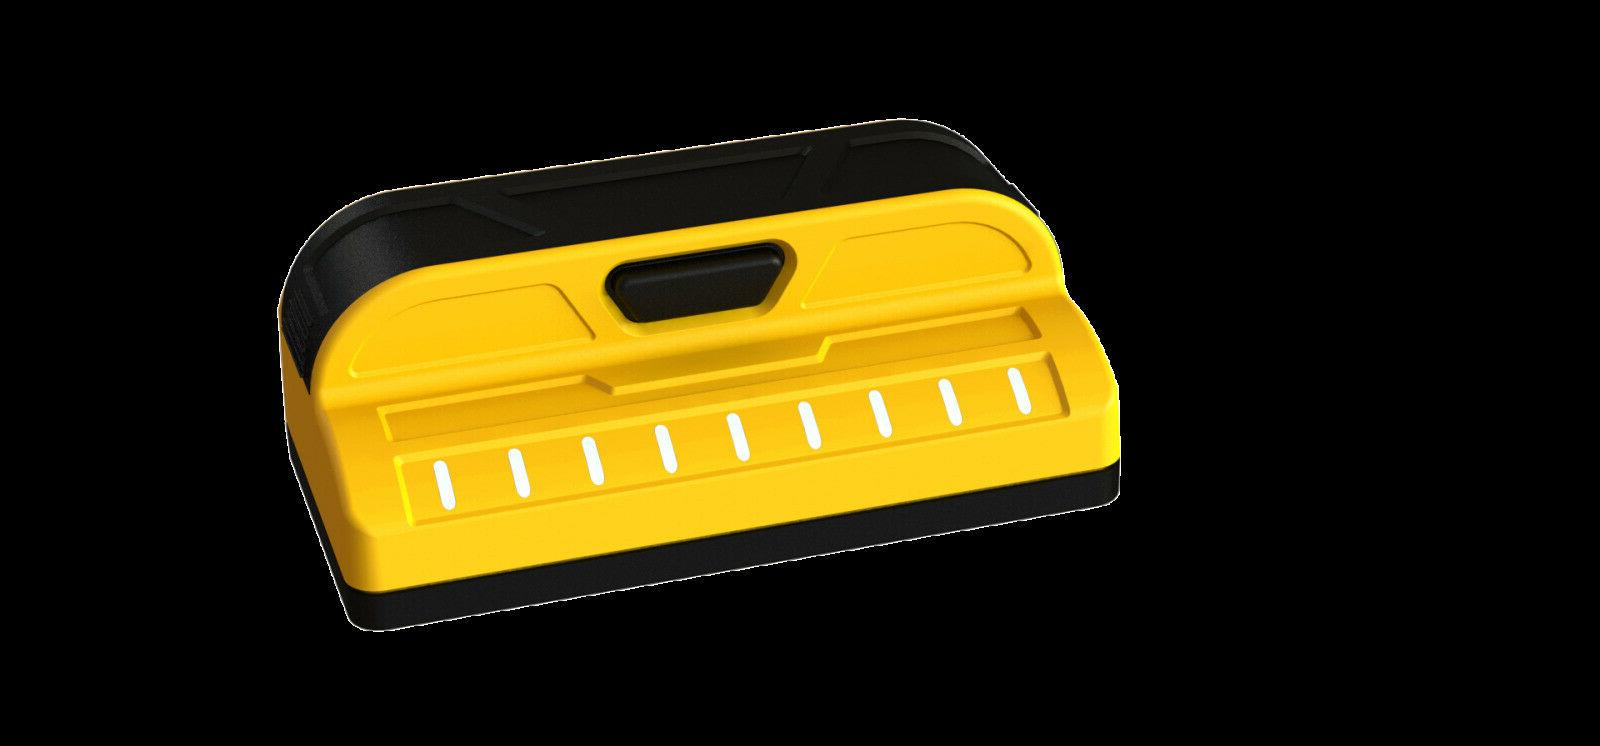 yellow professional stud finder measuring hand tools